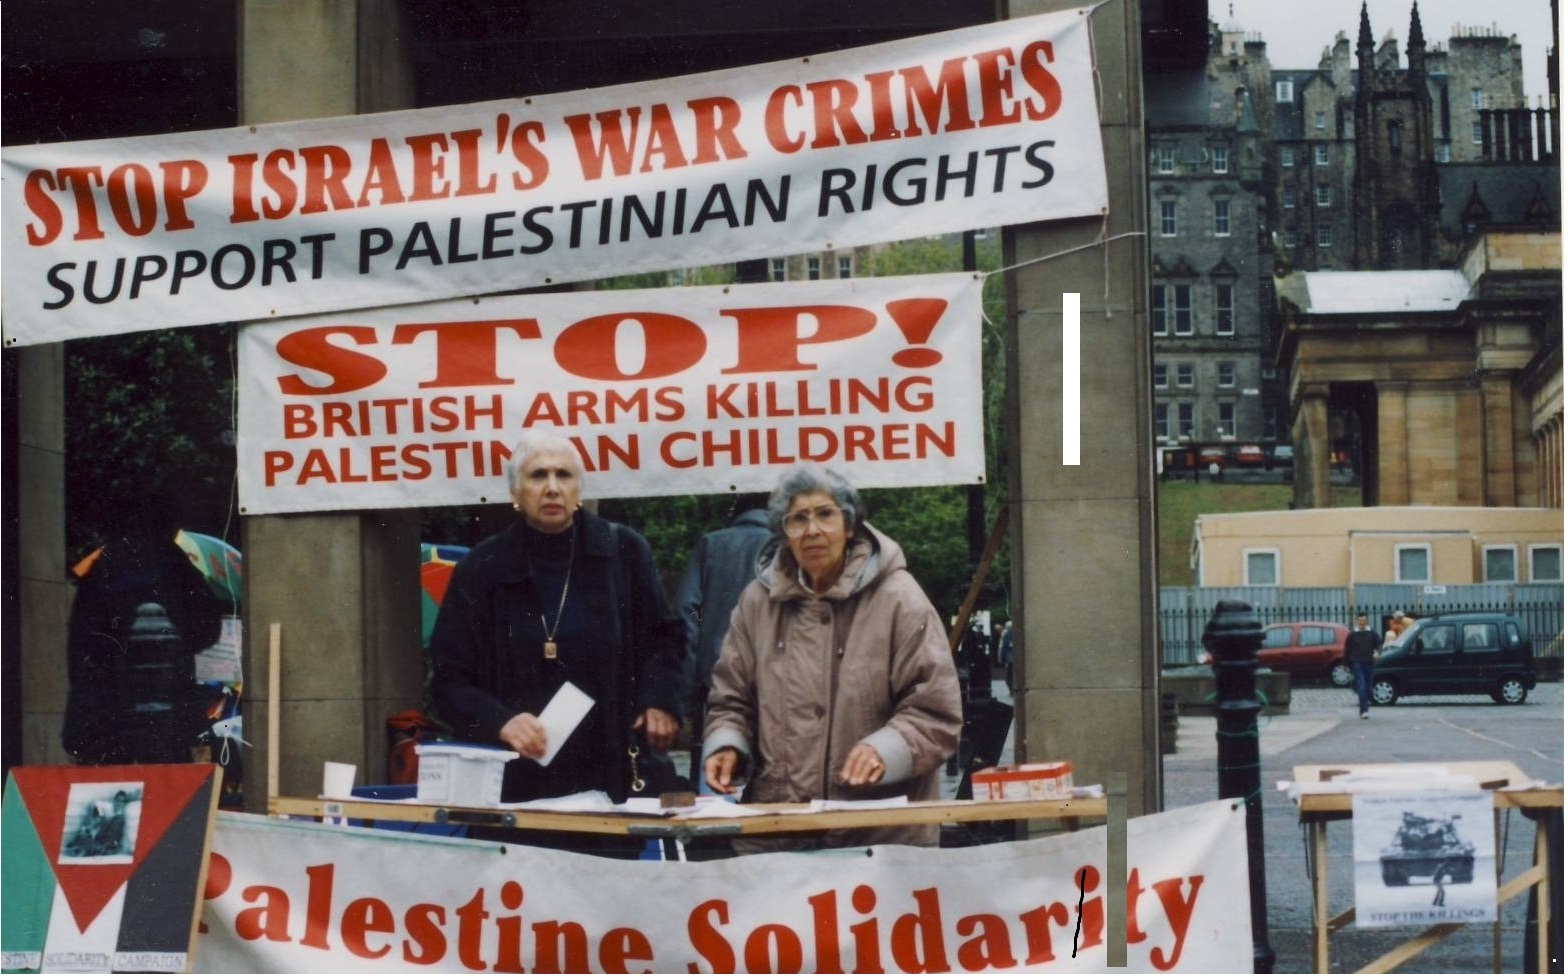 Palestinian-Jewish solidarity: Marion Woolfson (78) and Nasra Affara (82) on an SPSC publicity stall, Princes St, Edinburgh in 2001